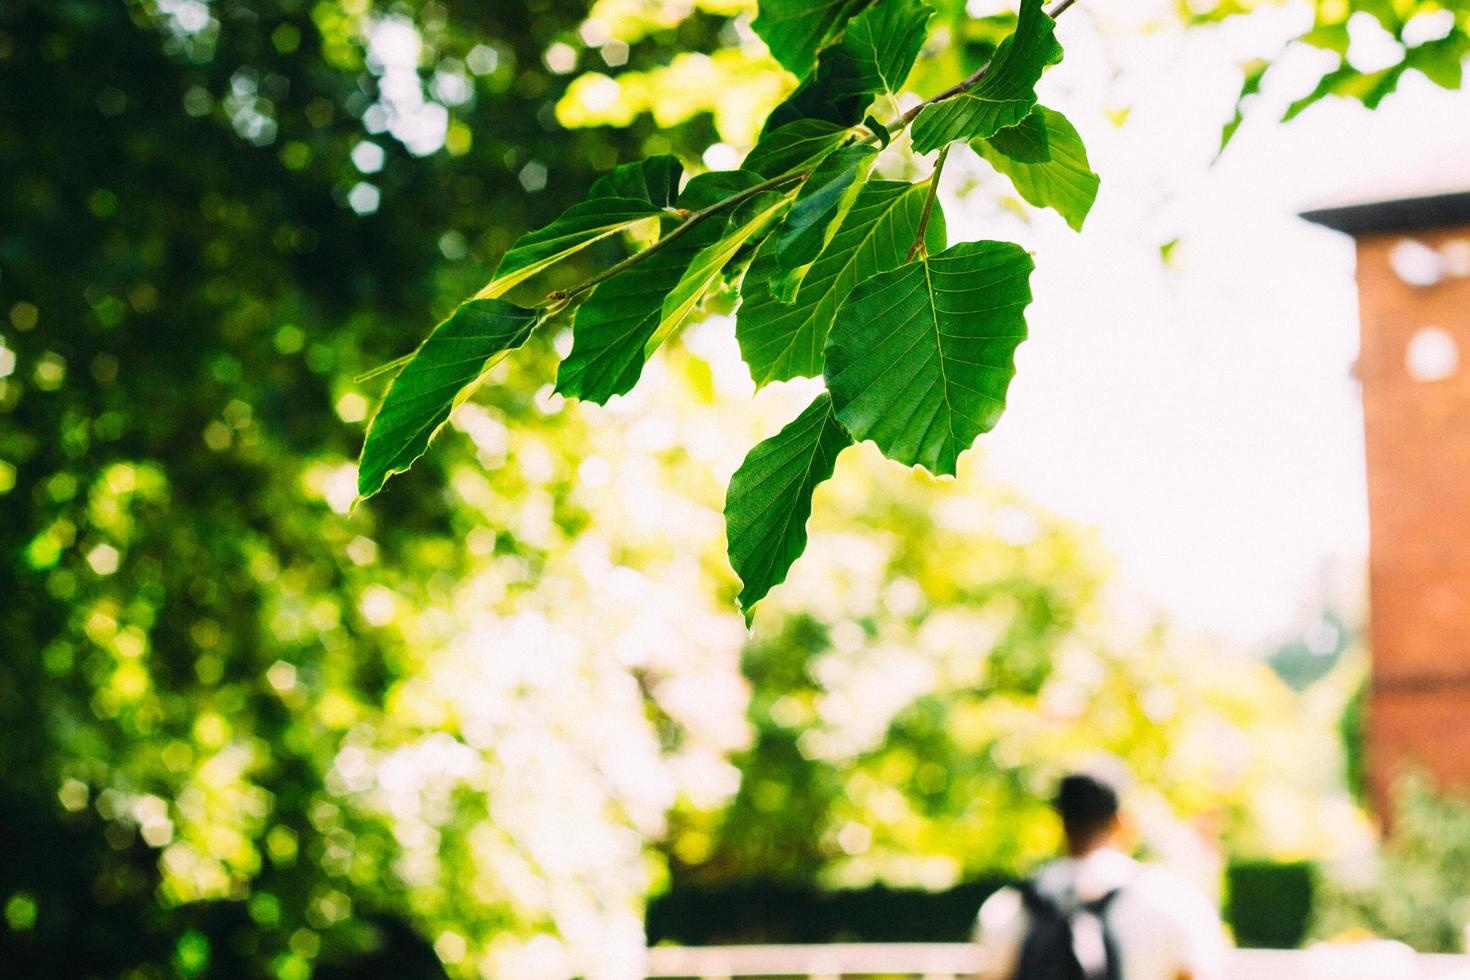 Selective focus photo of green leaves